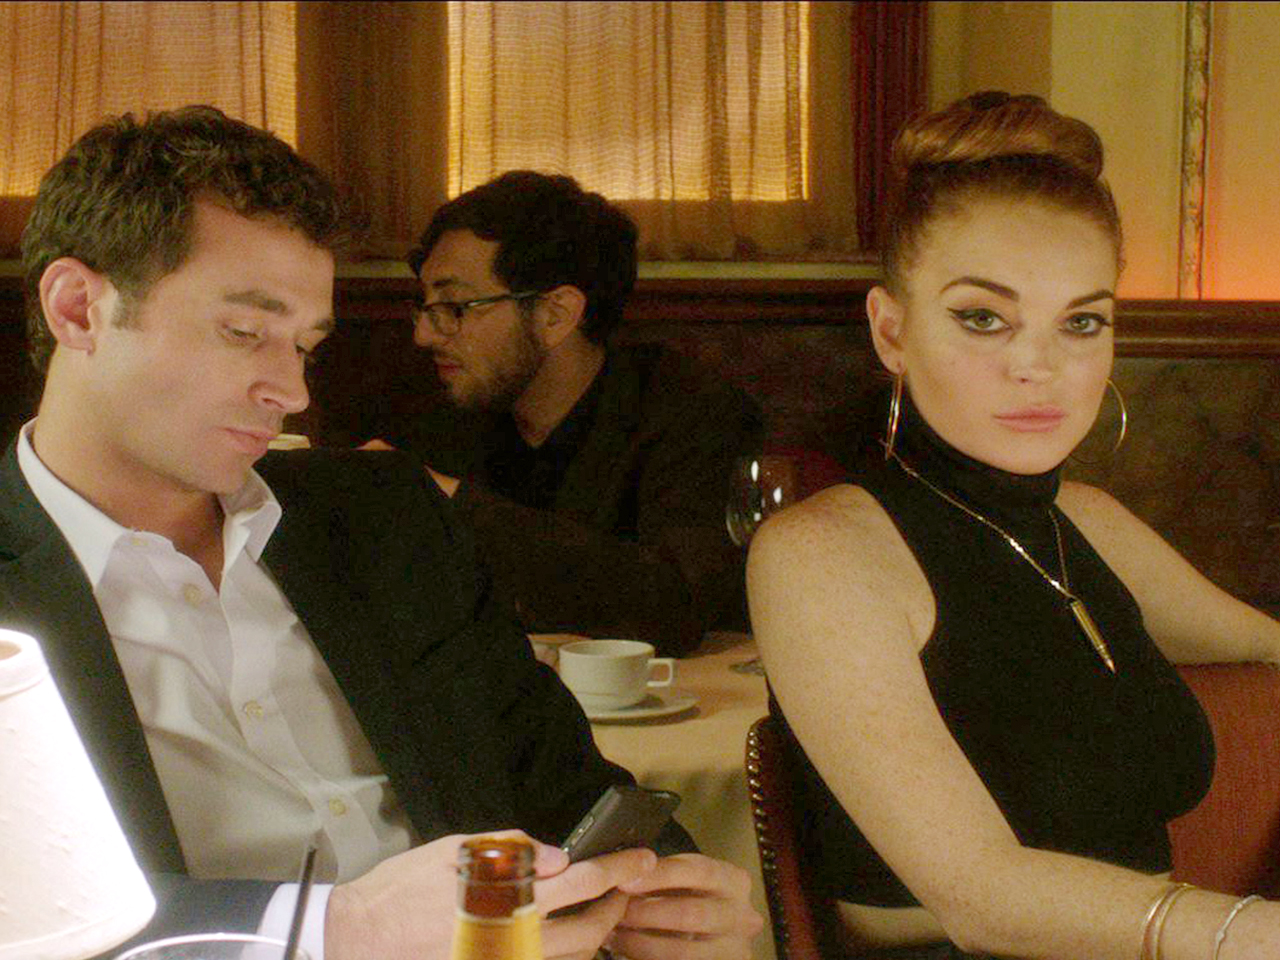 James Deen and Lindsay Lohan in